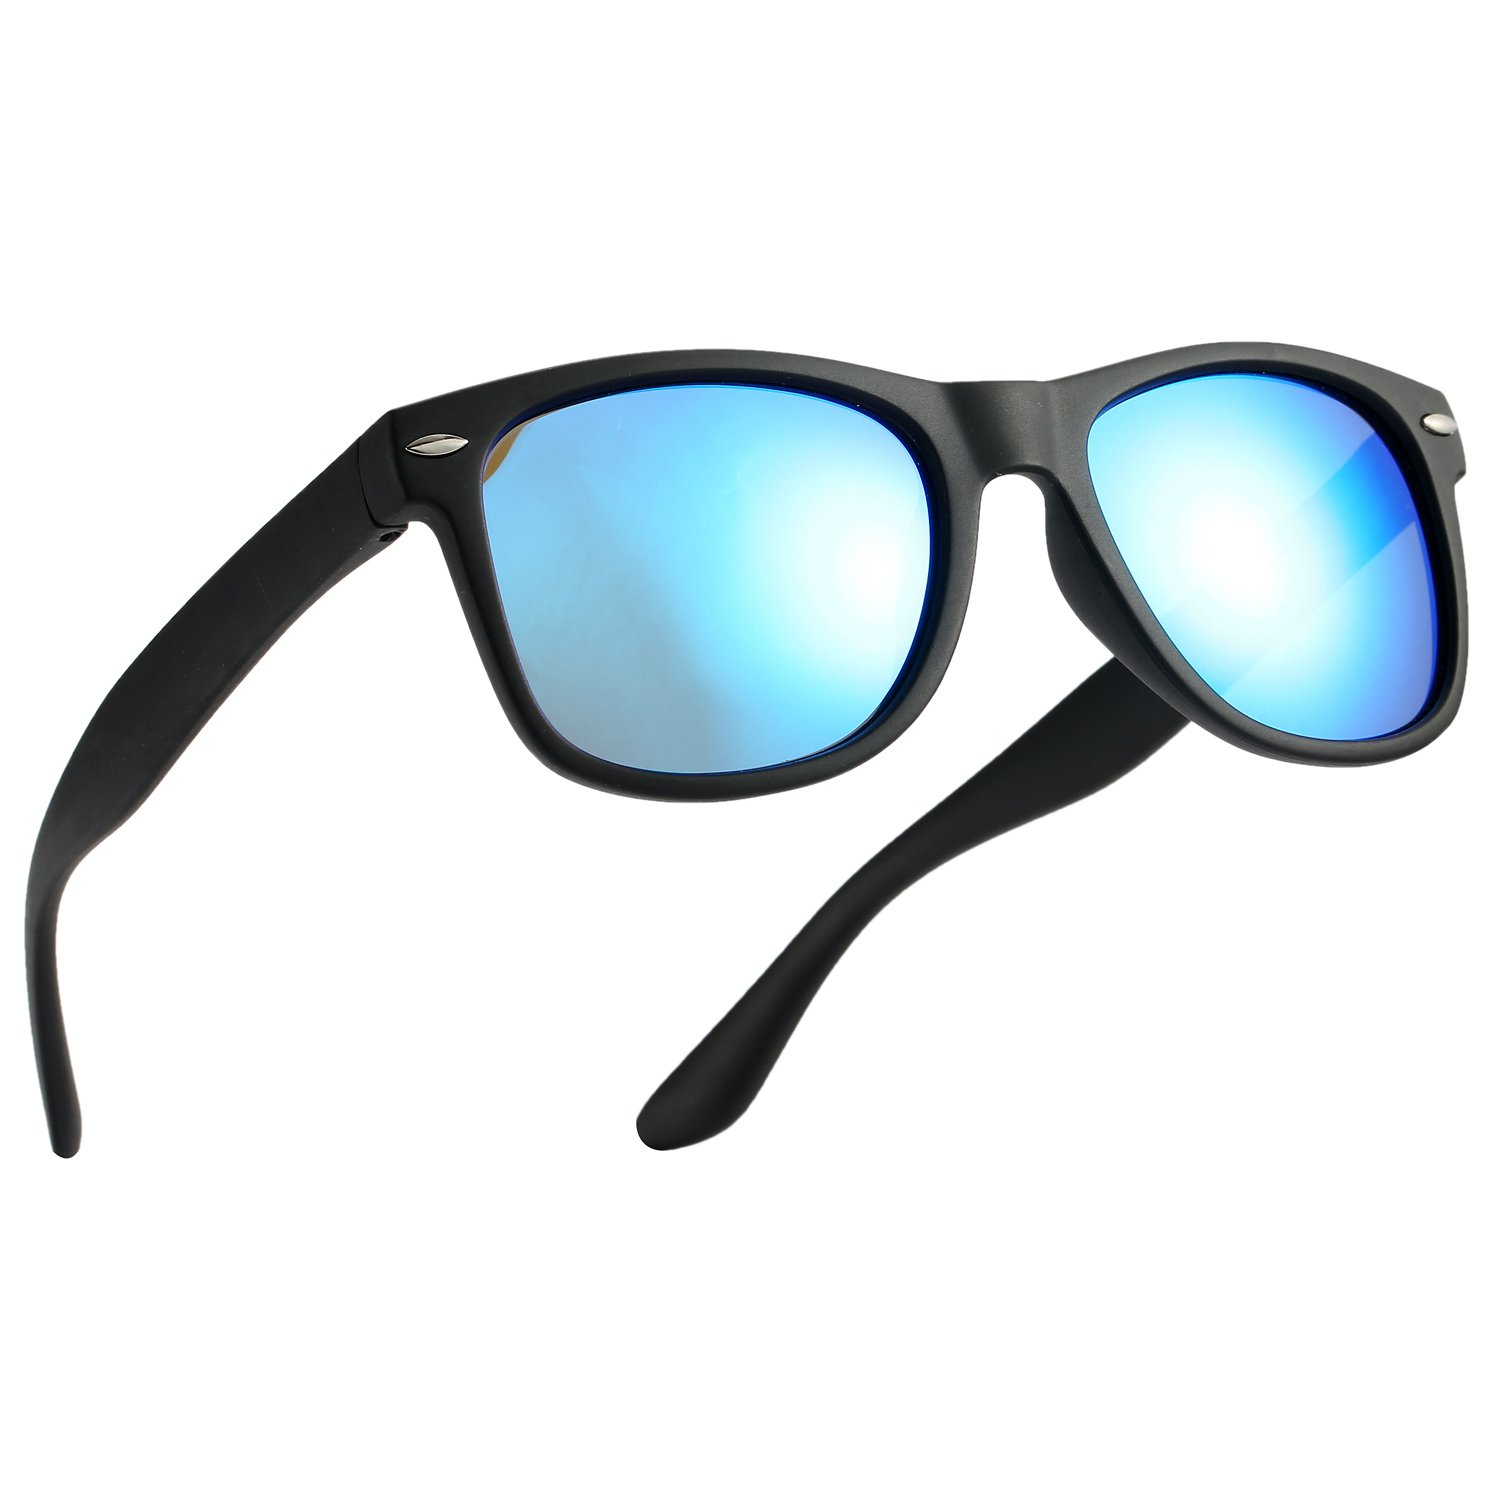 Pro Acme TPEE Rubber Flexible Polarized Wayfarer Sunglasses (Matte Black Frame/Blue Mirrored Lens/54) by Pro Acme